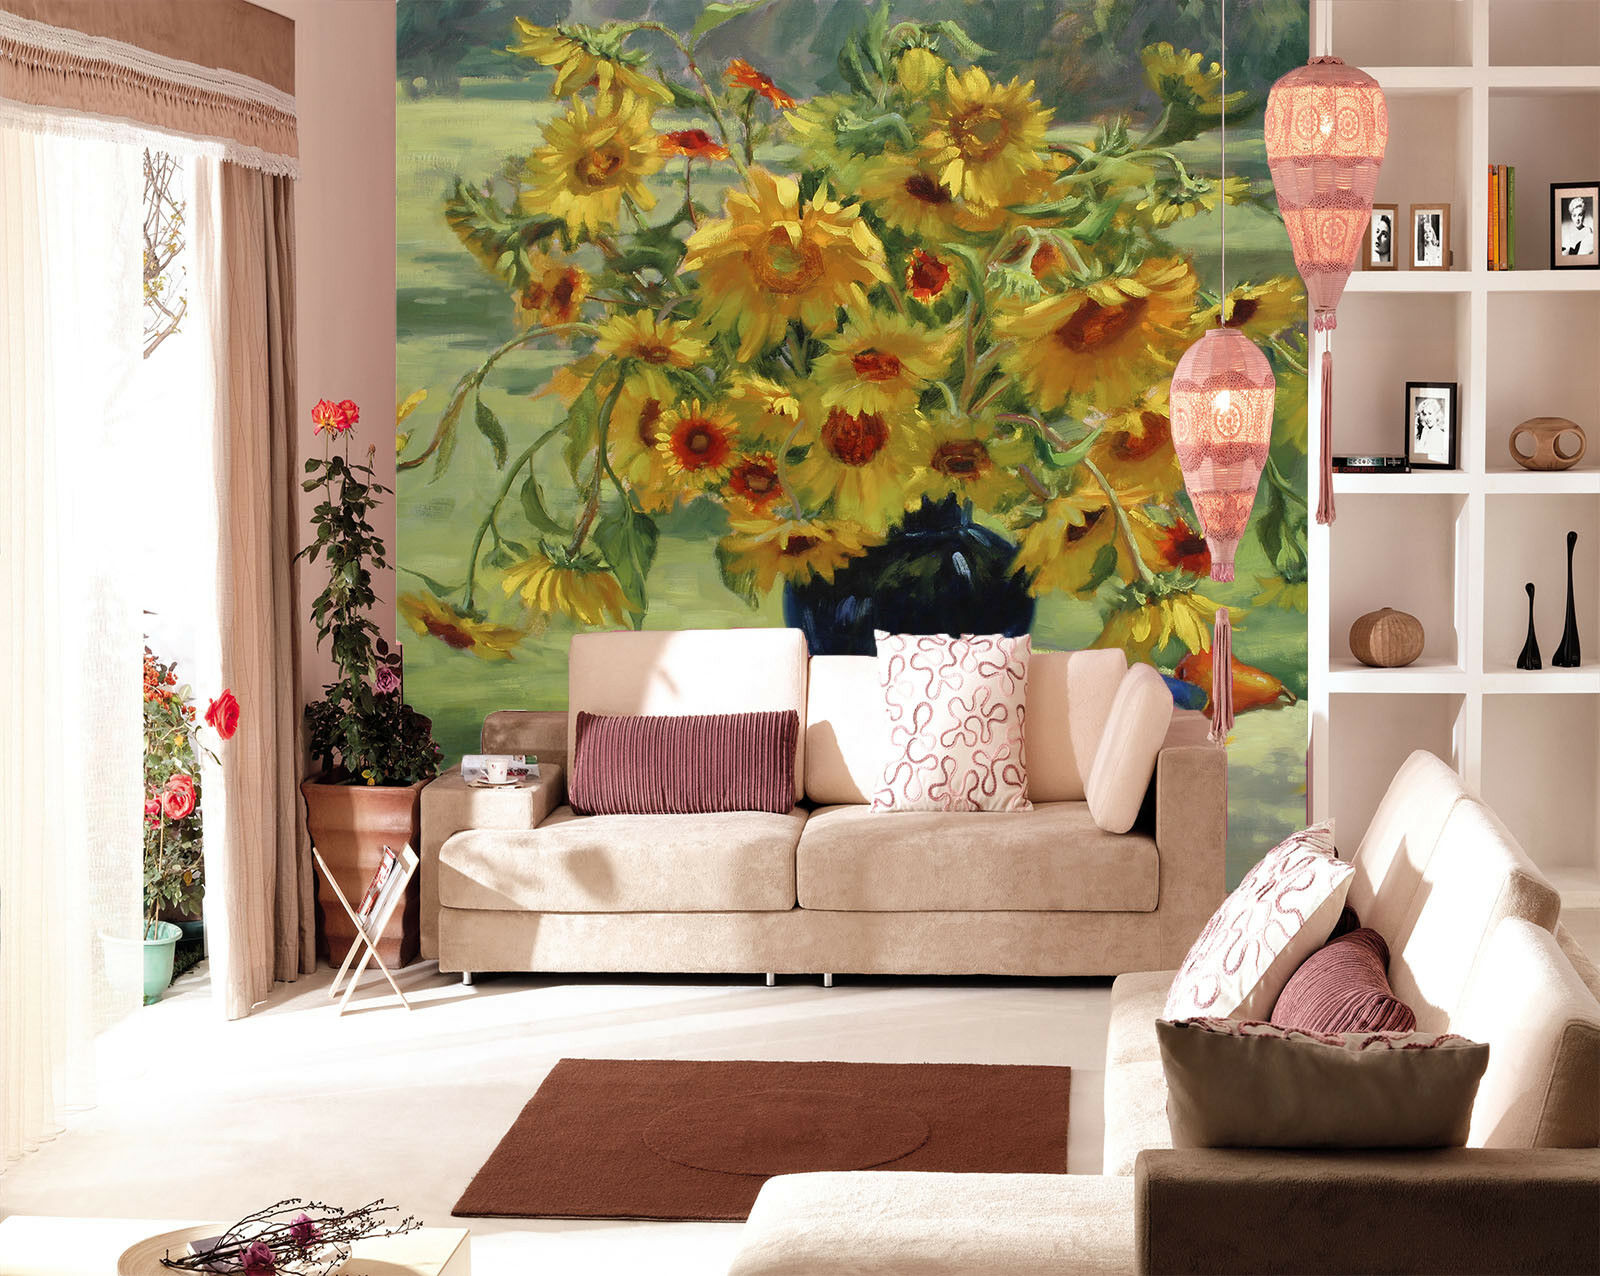 3D Sunflower 555 Wallpaper Murals Wall Print Wallpaper Mural AJ WALL AU Summer